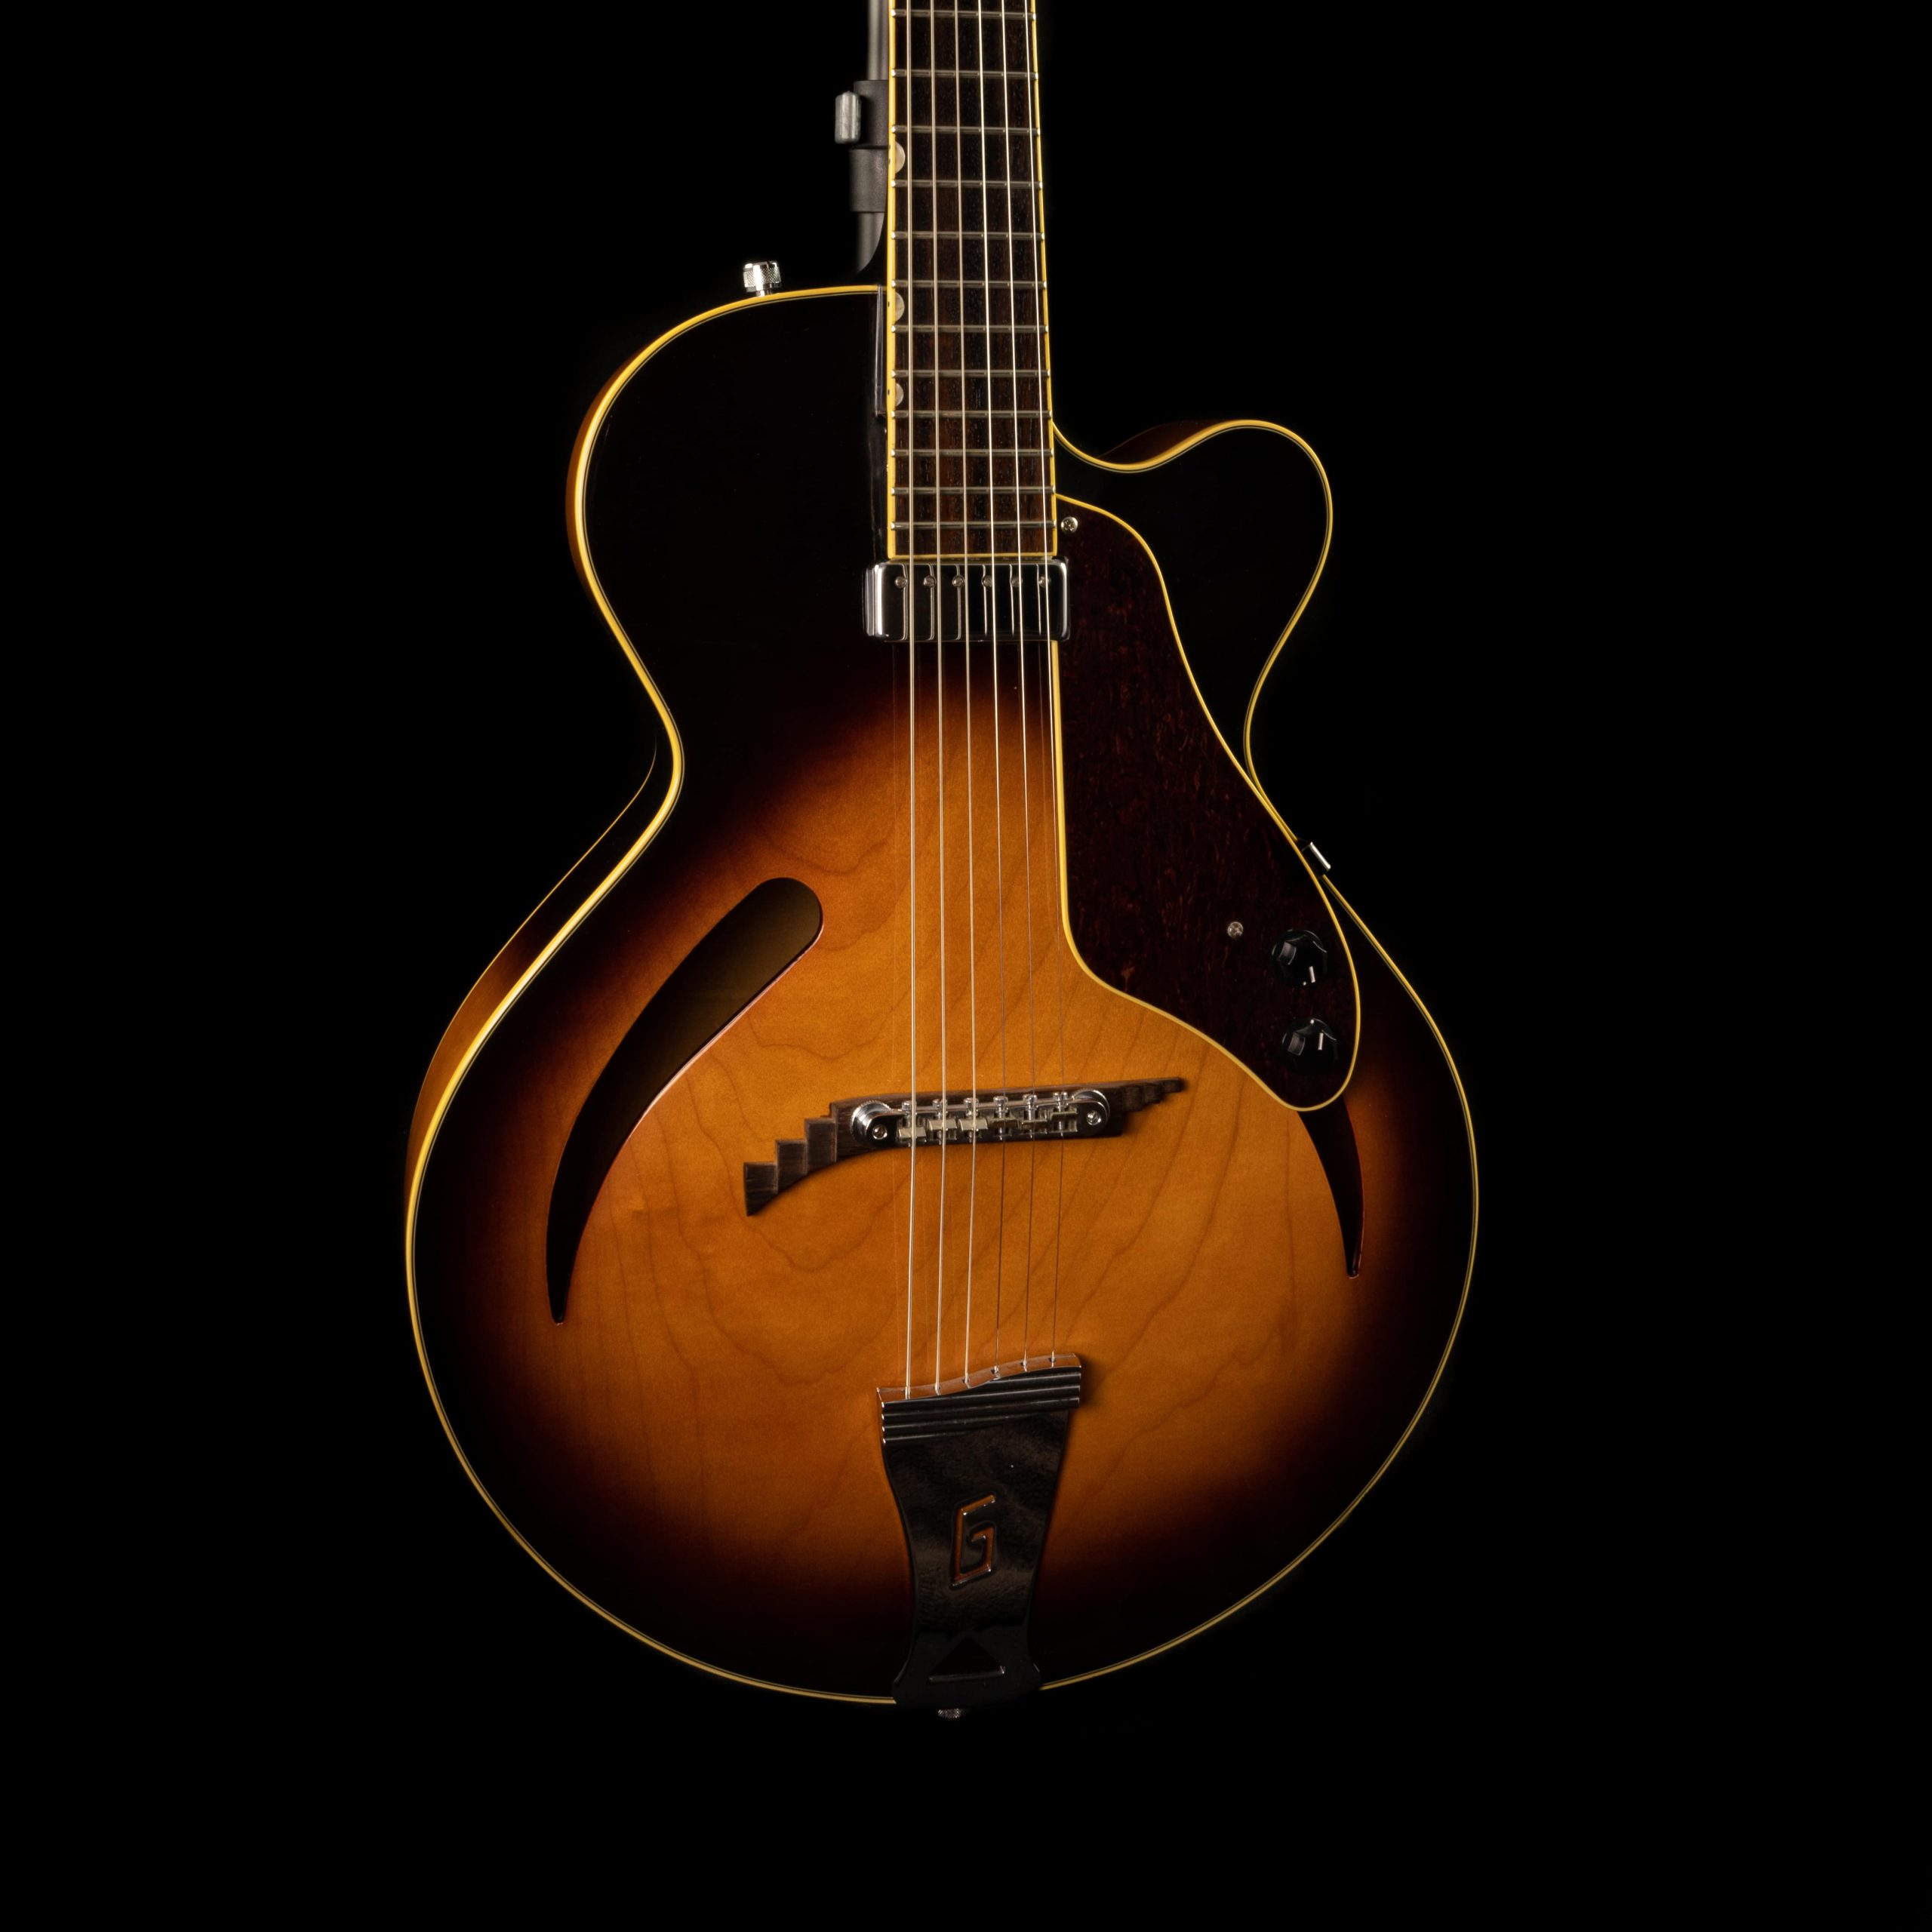 Gretsch Historic Series Synchromatic Jr in Tobacco Sunburst, Pre-Owned